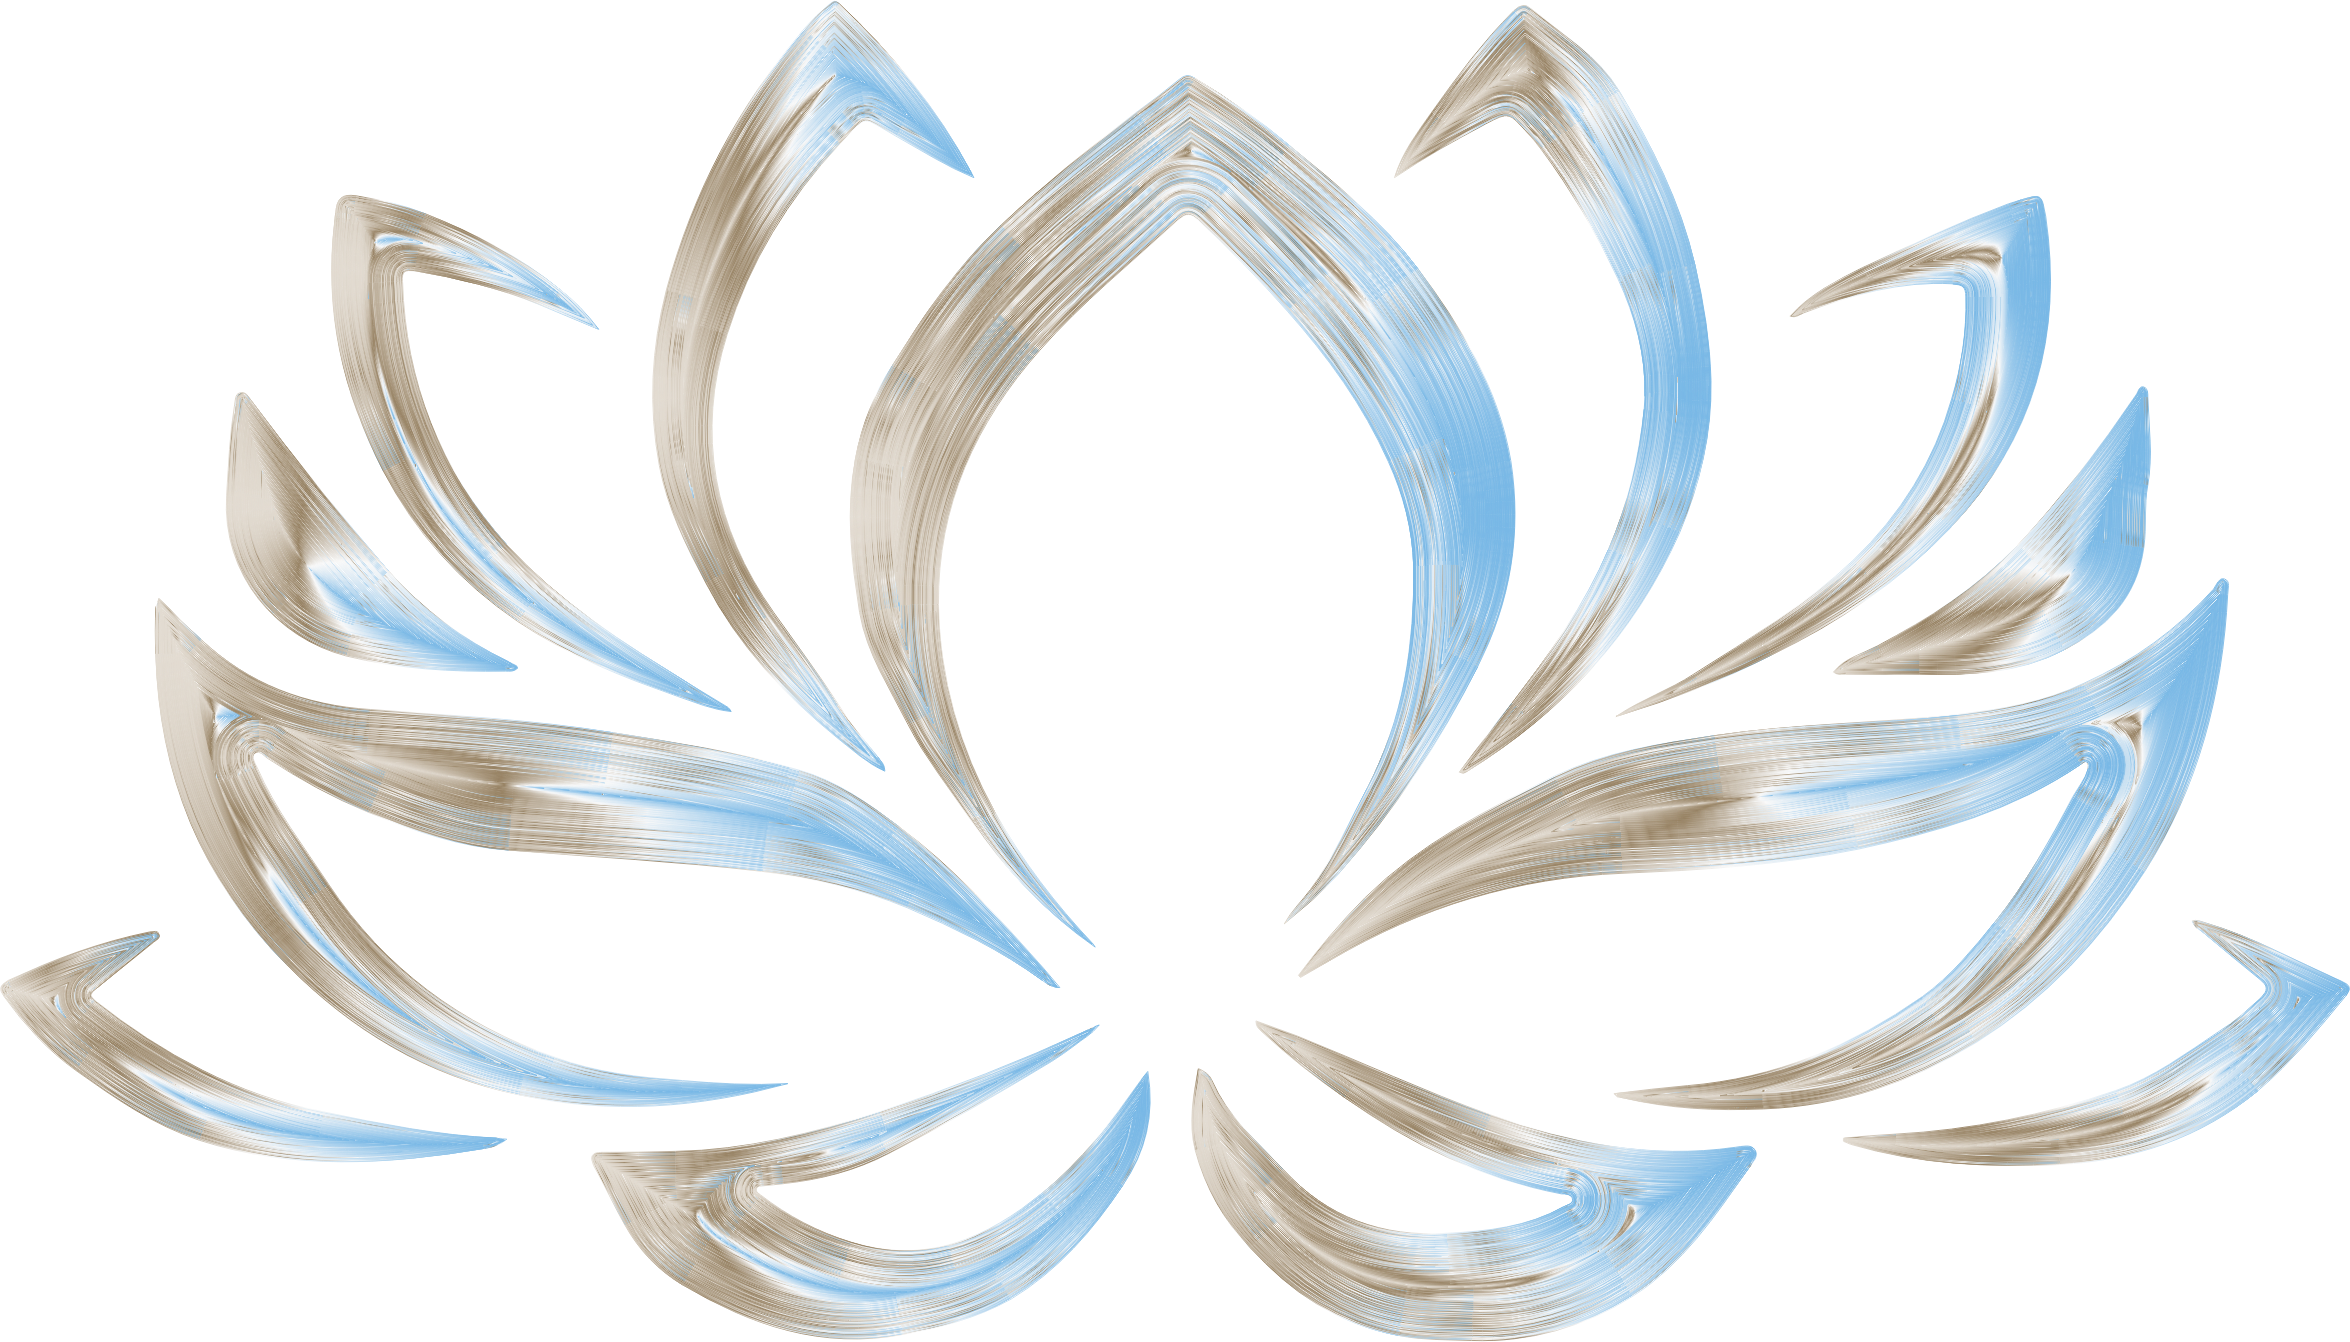 Lotus Flower Clipart No Background.